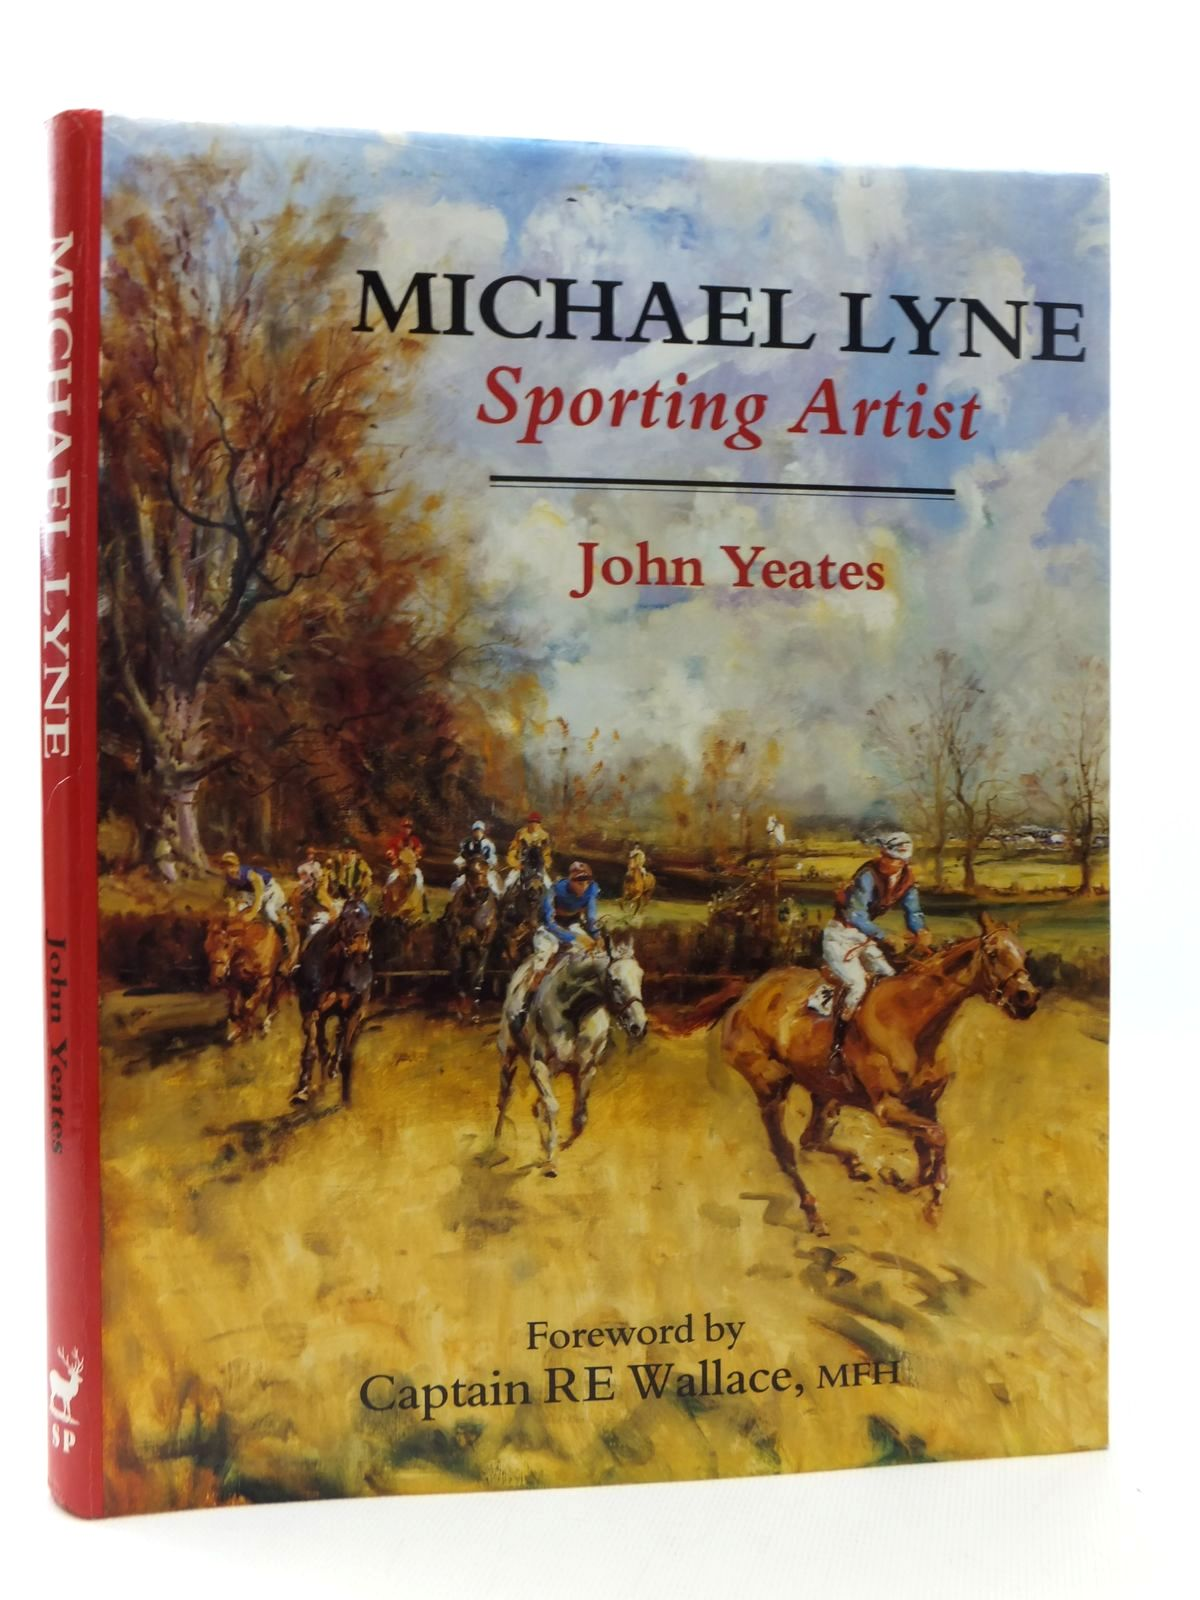 Photo of MICHAEL LYNE SPORTING ARTIST written by Yeates, John illustrated by Lyne, Michael published by The Sportsman's Press (STOCK CODE: 2123537)  for sale by Stella & Rose's Books